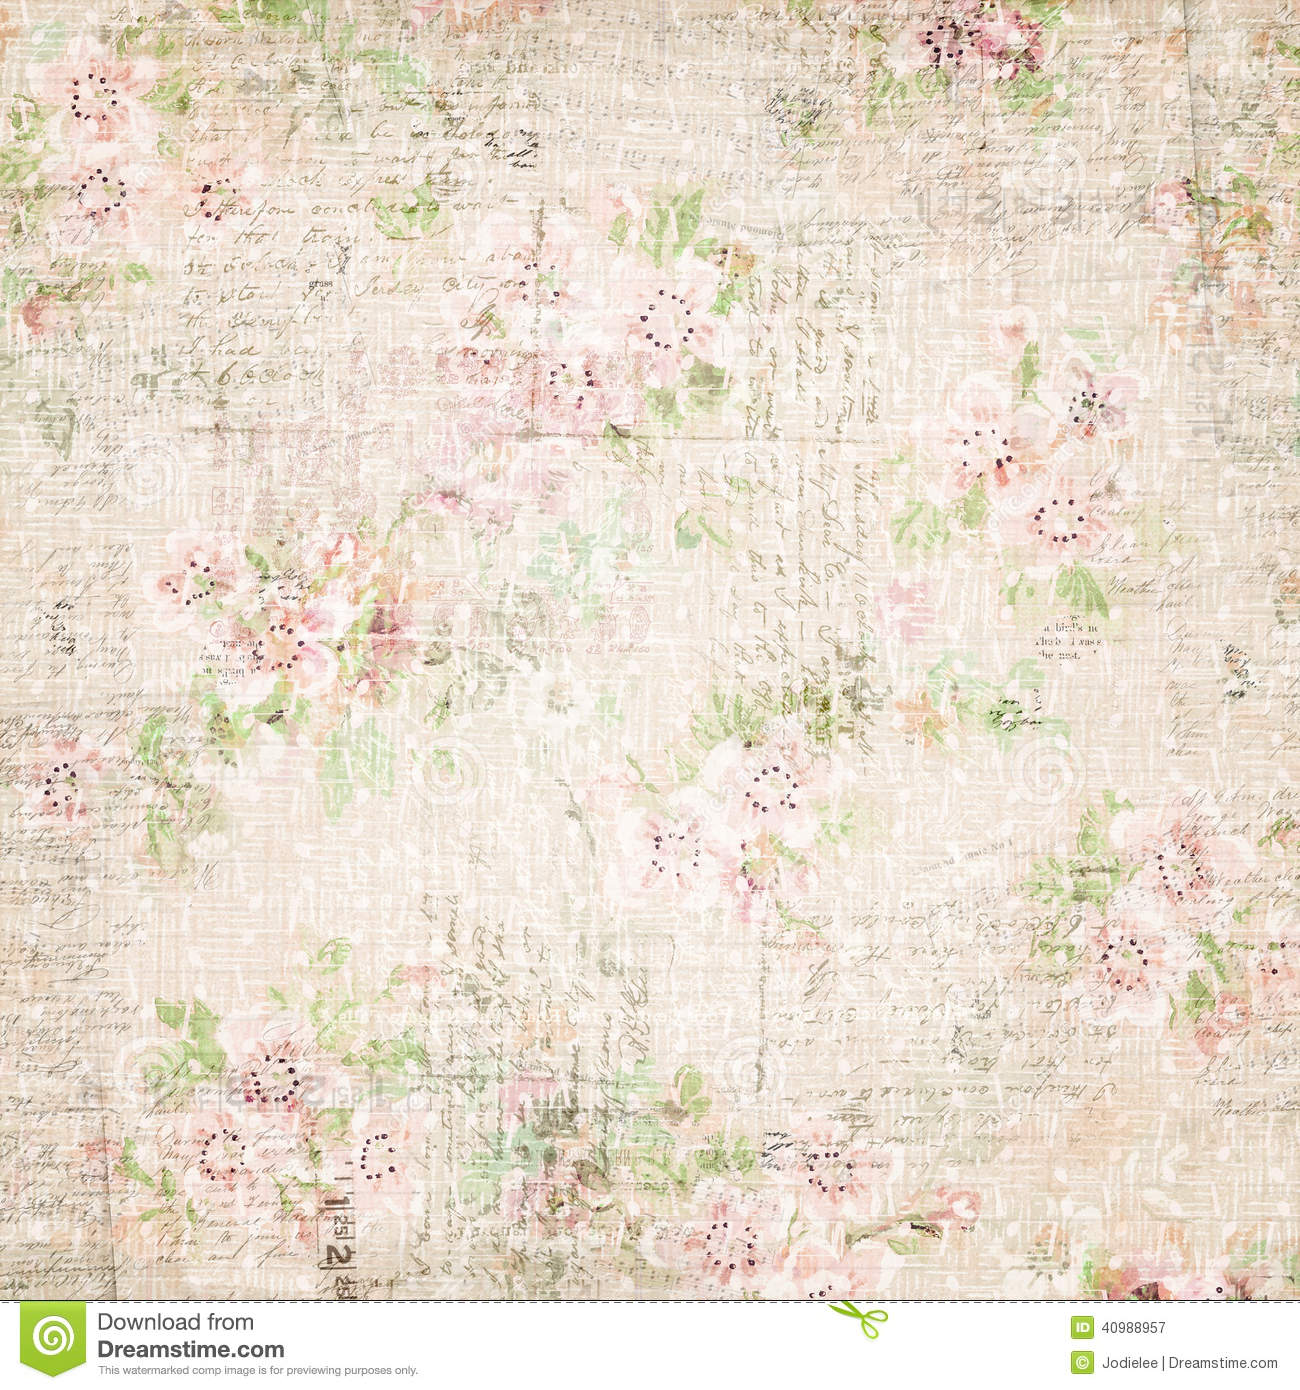 Vintage french floral shabby floral chic wallaper stock for Old french wallpaper